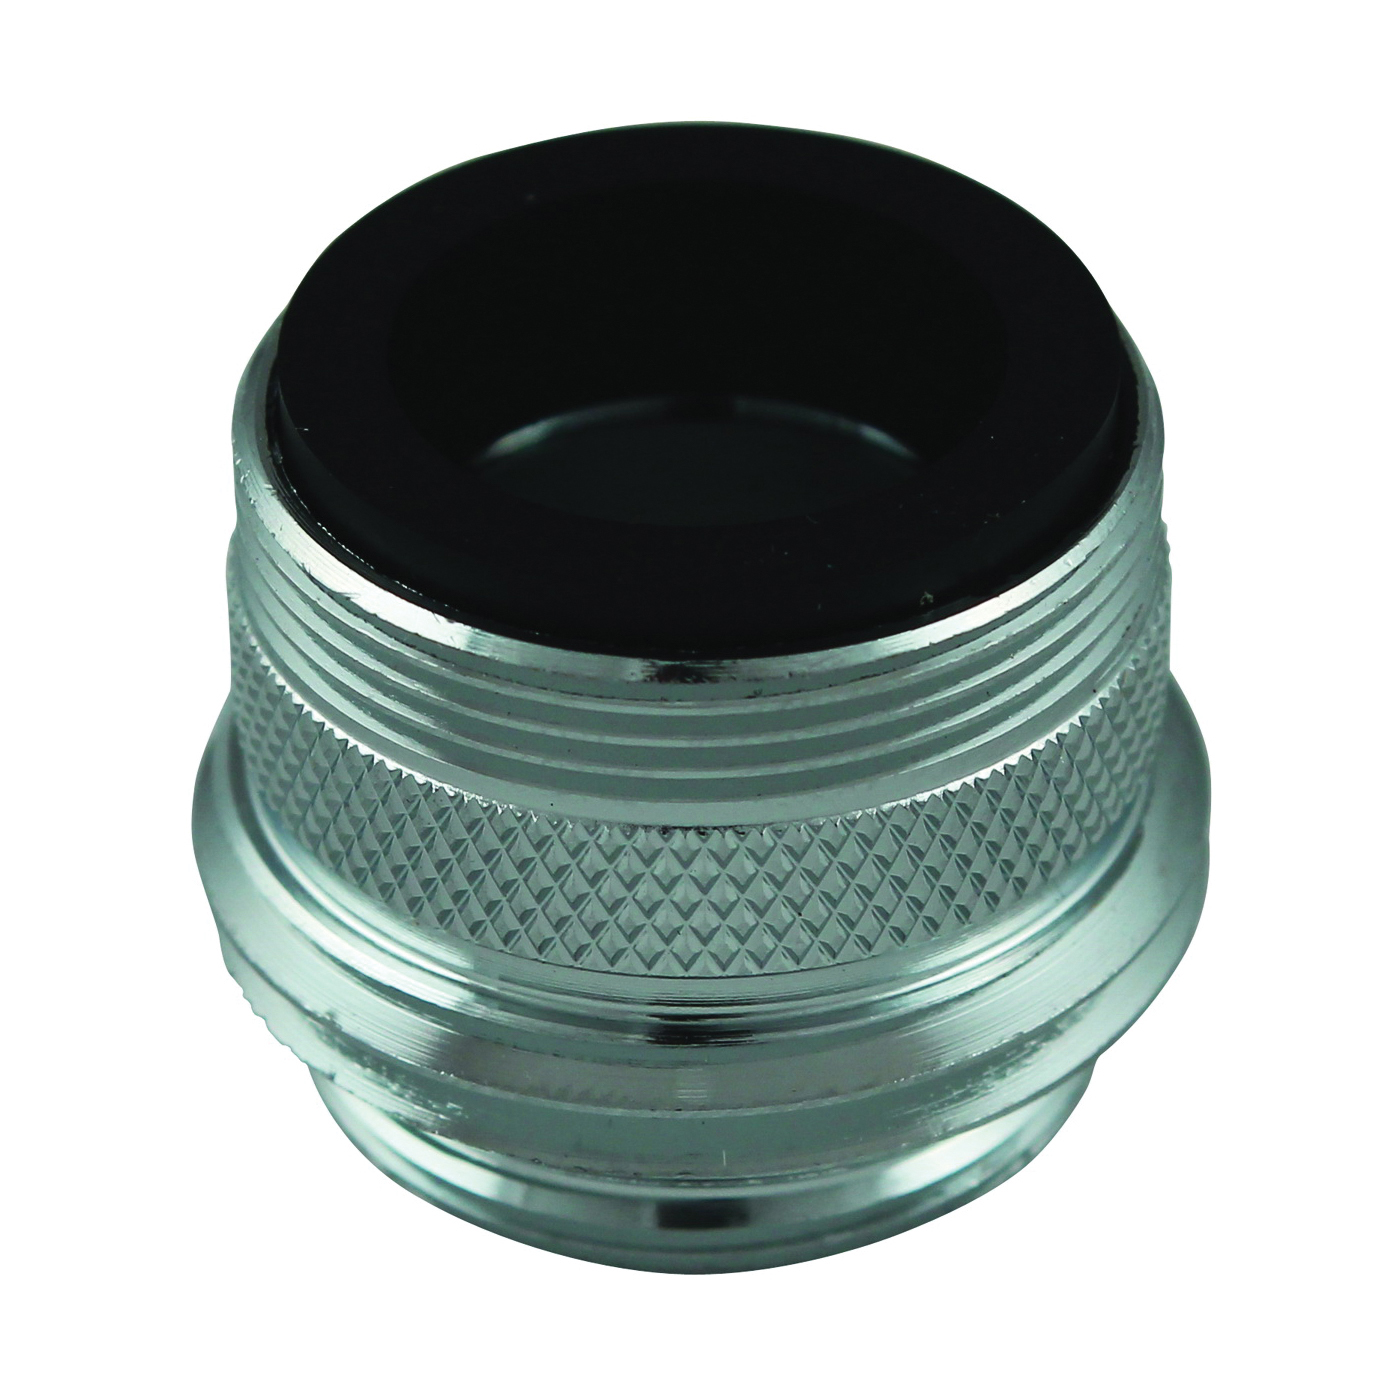 Picture of Plumb Pak PP800-32 Hose Adapter, 15/16-27 x 55/64-27 x 3/4 or 55/64, Hose, Chrome